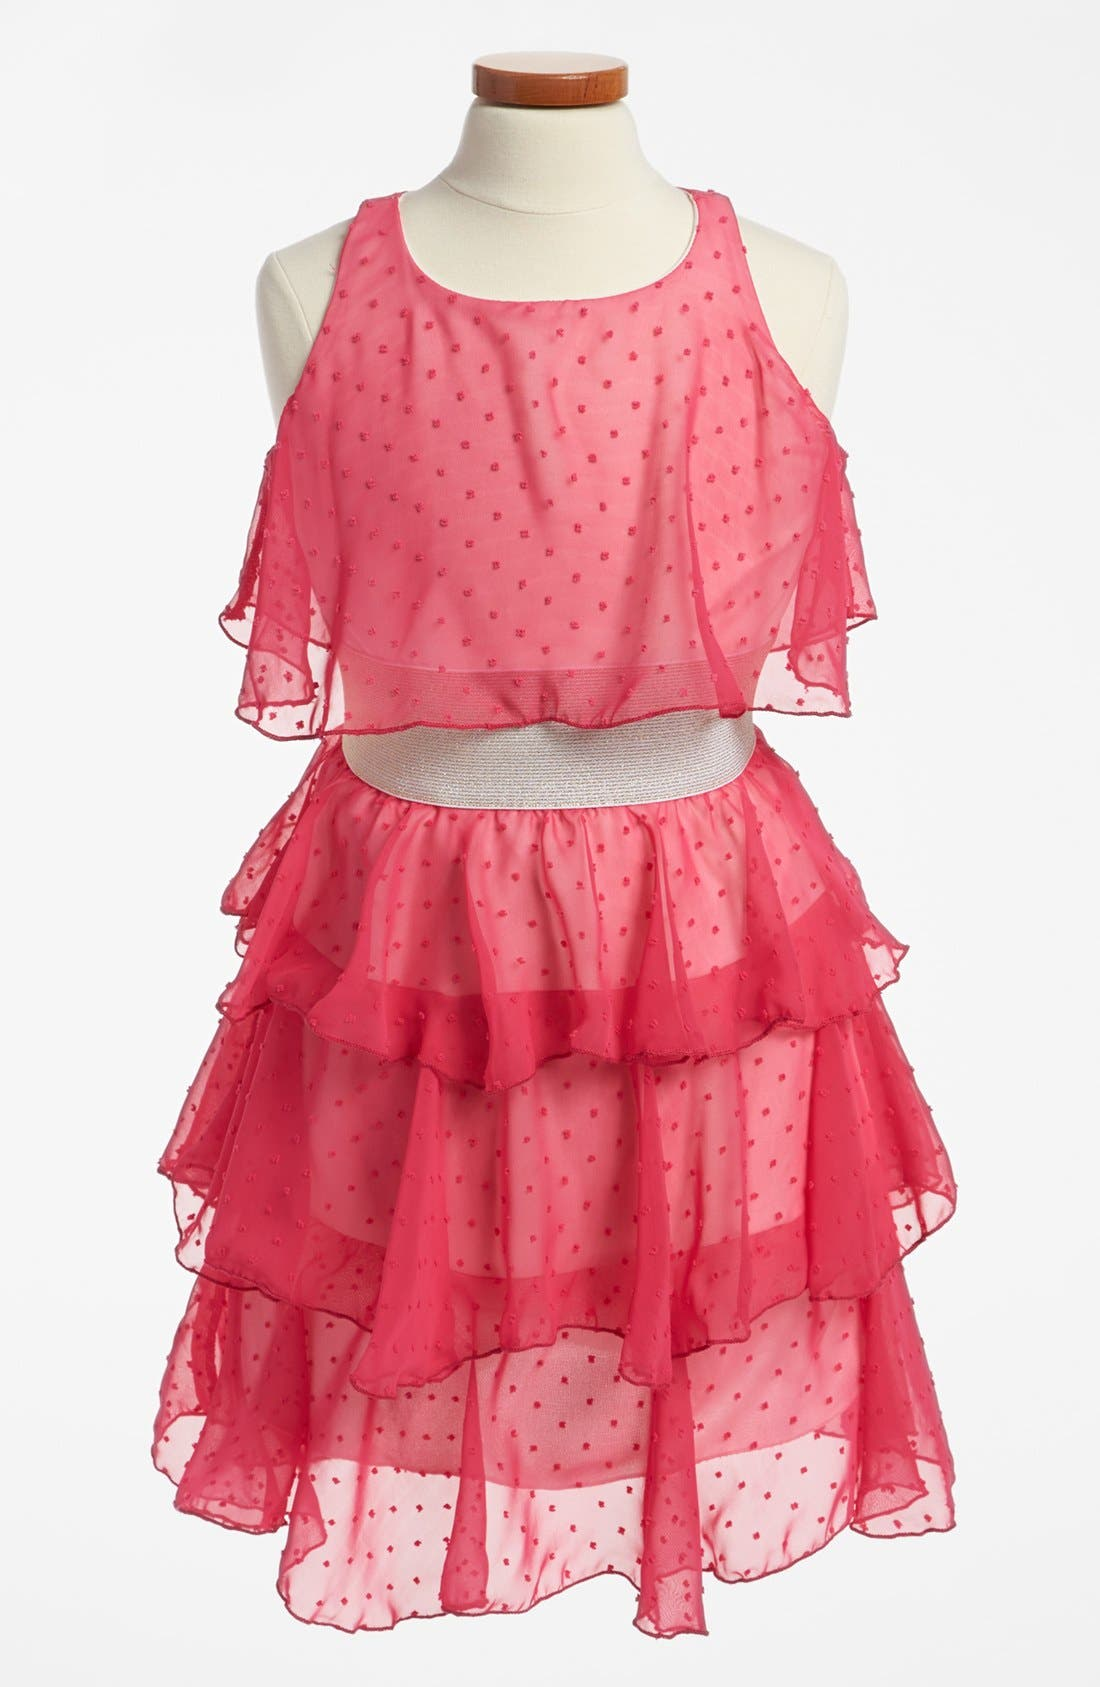 Alternate Image 1 Selected - Un Deux Trois Tiered Chiffon Dress (Big Girls)